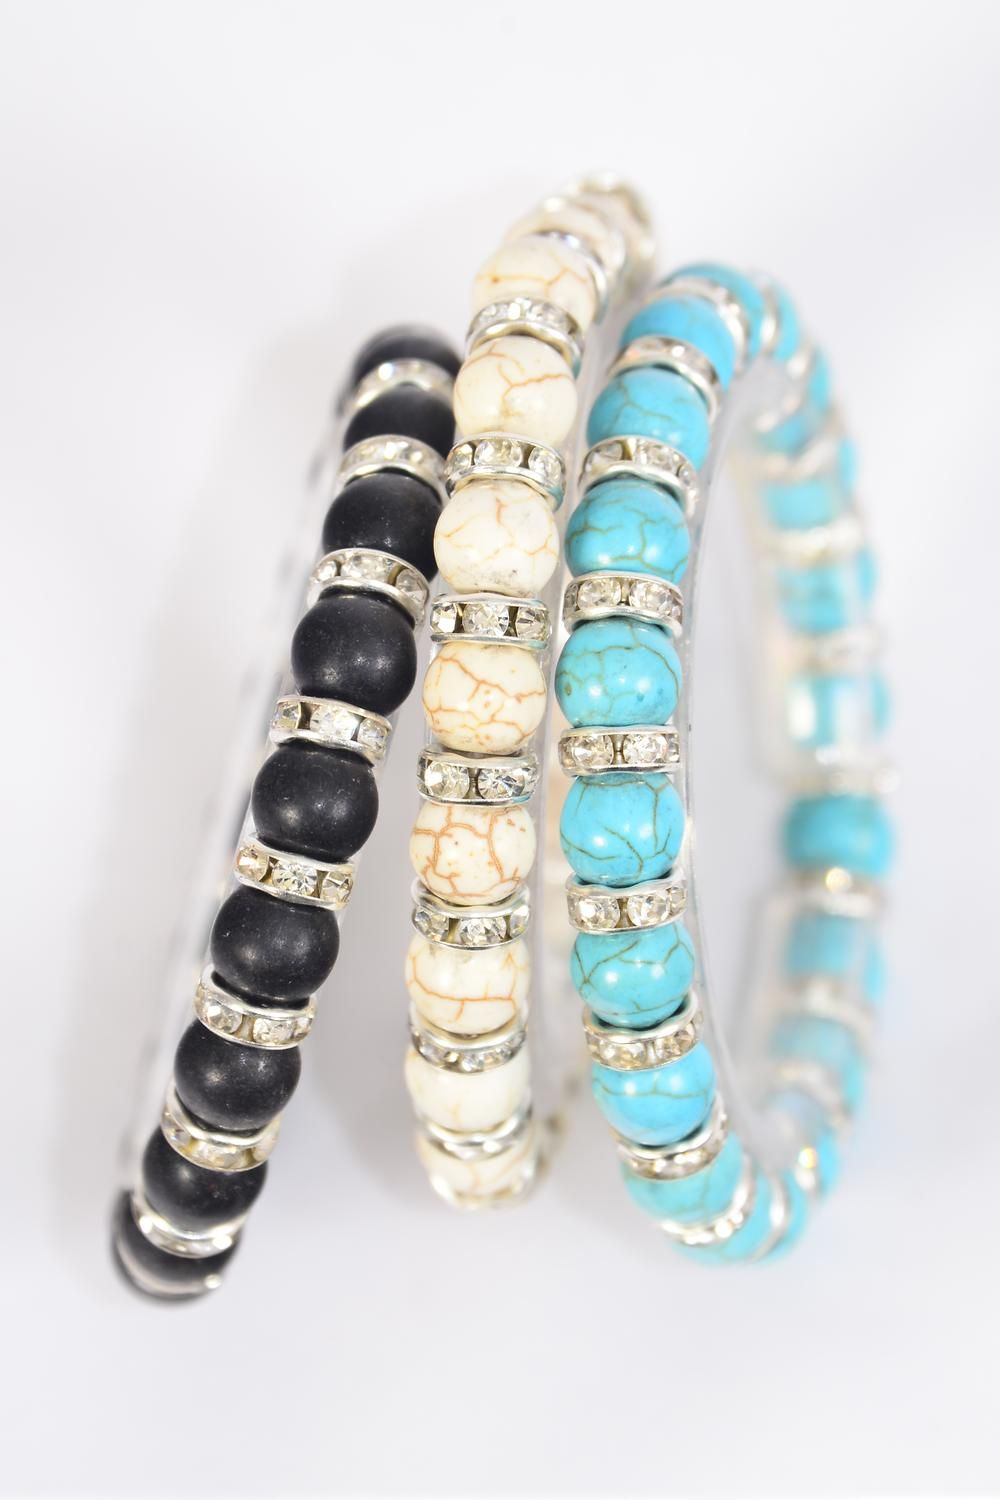 Bracelet 8 mm Semiprecious Stone & Rhinestone Bessel Stretch/DZ **Stretch** 4 Black,4 Ivory,4 Turquoise,3 Color Asst,Hang Tag & Opp Bag & UPC Code -